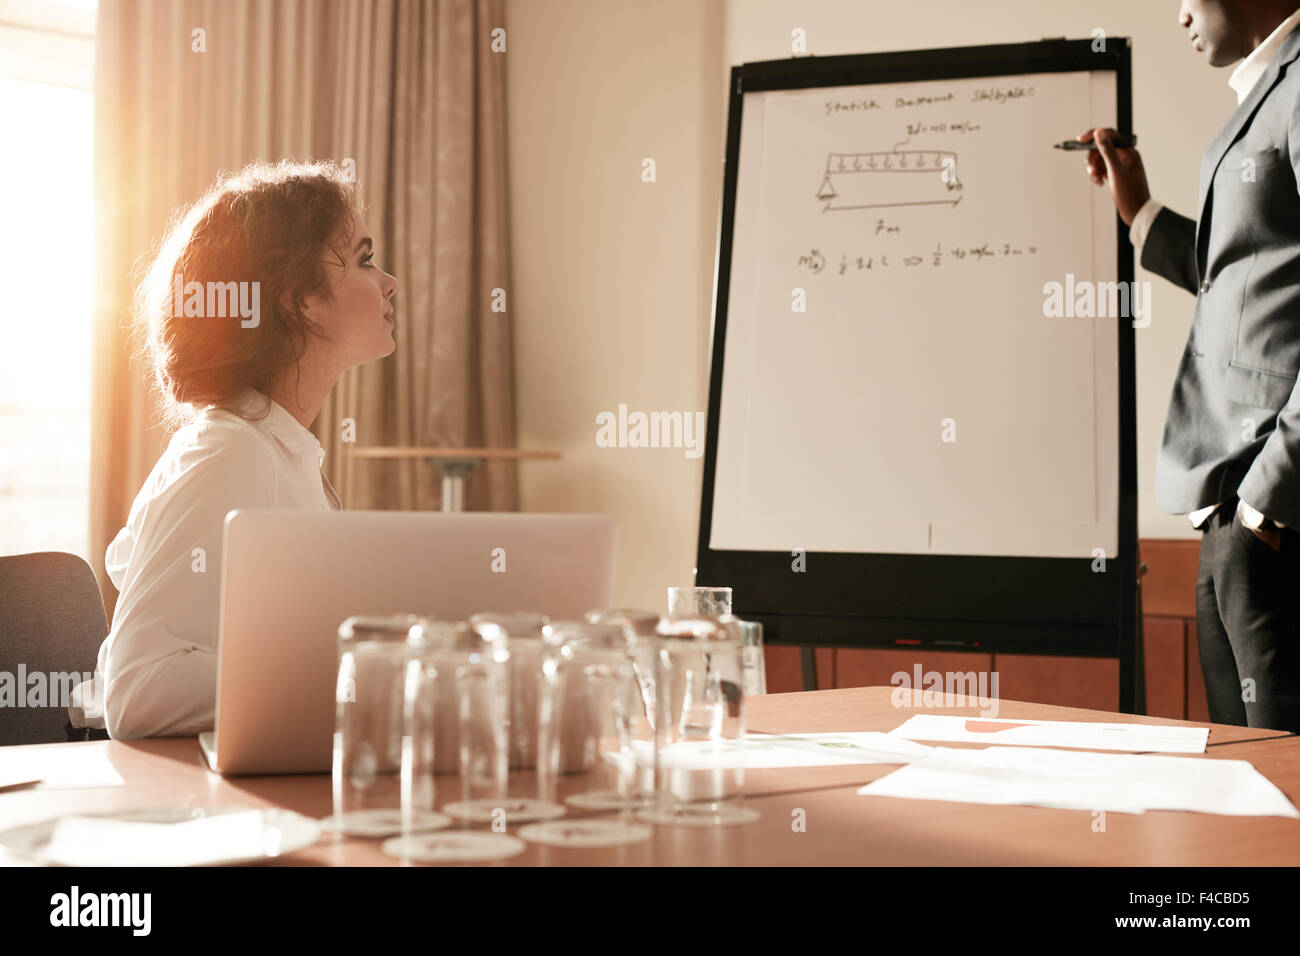 Portrait of an man sharing some of his thoughts on a flip board. Businessman explaining something to a colleague Stock Photo